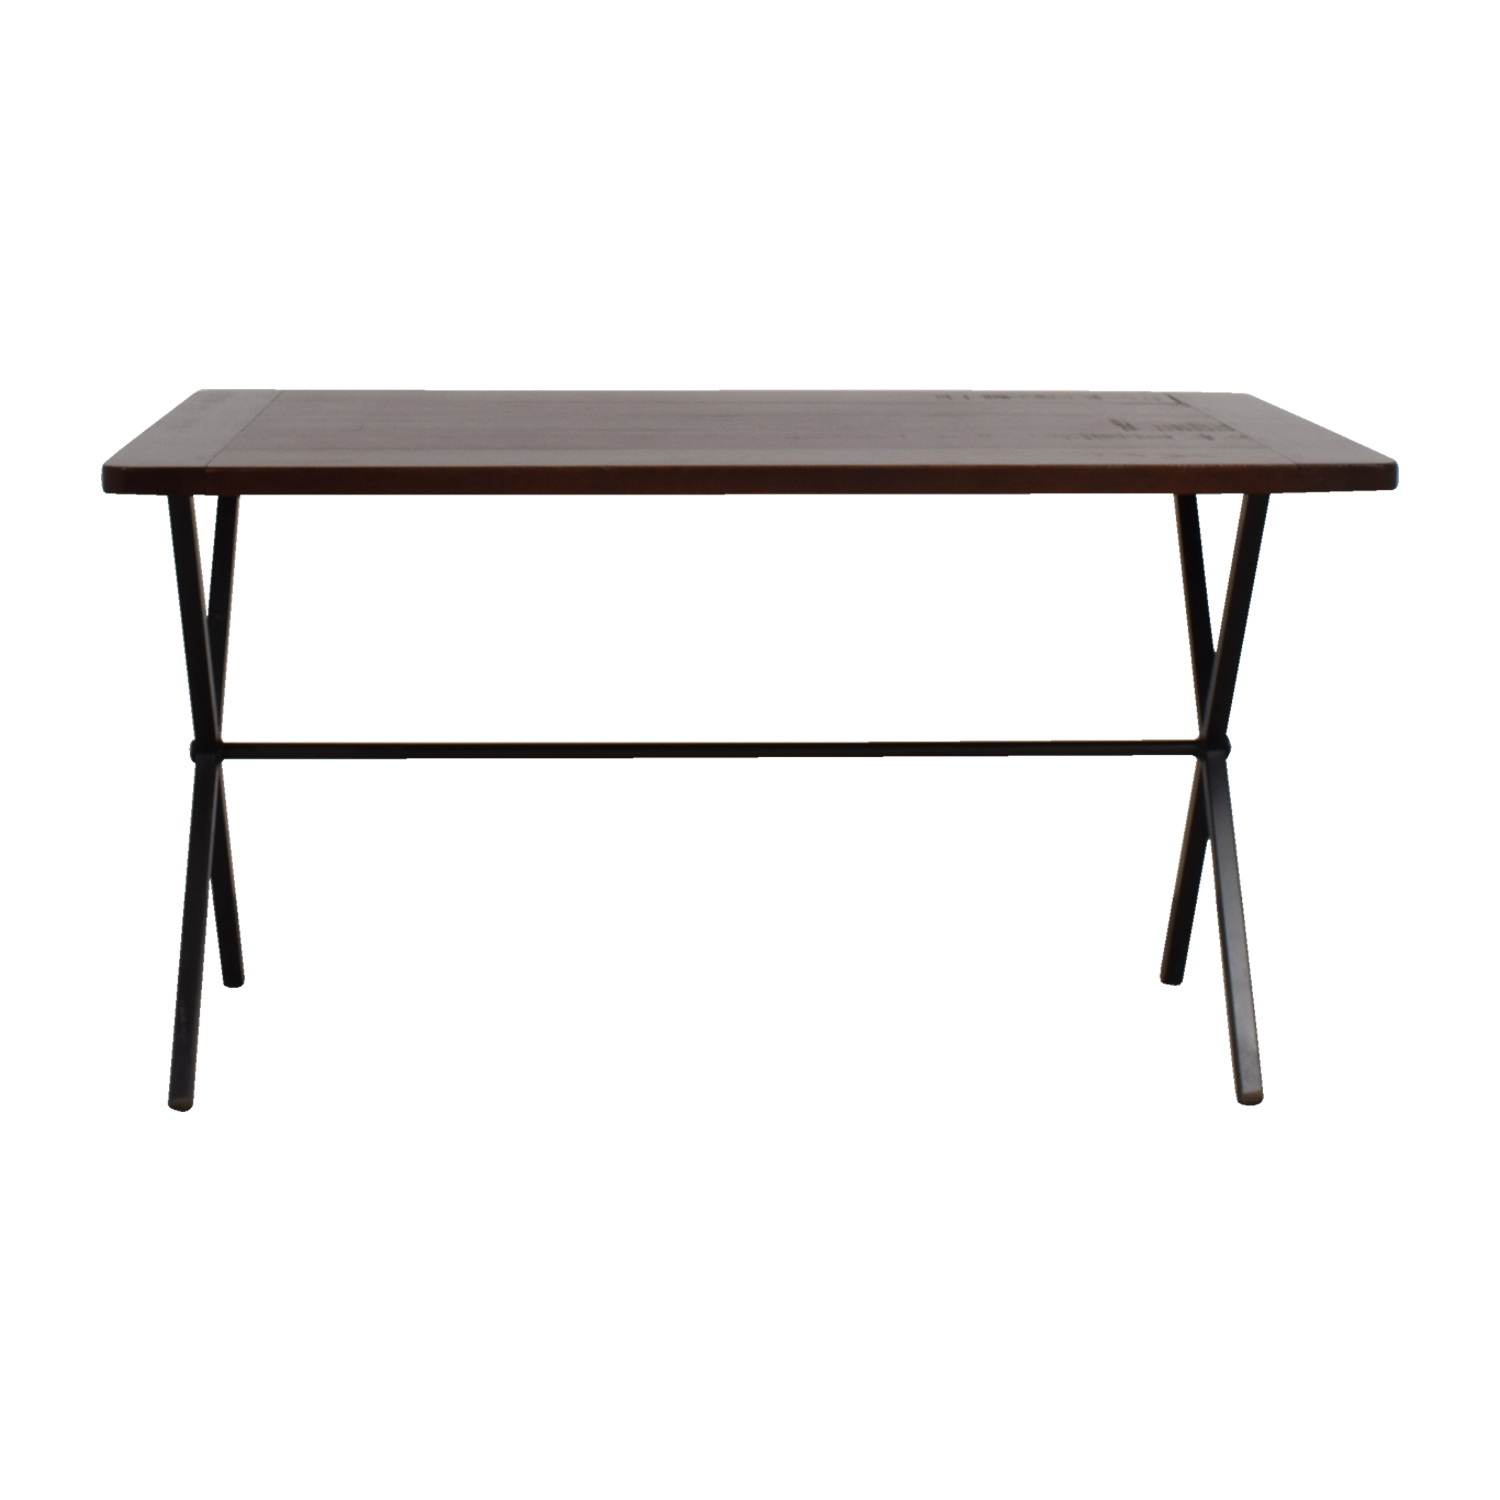 Brown Top with Black Base Table